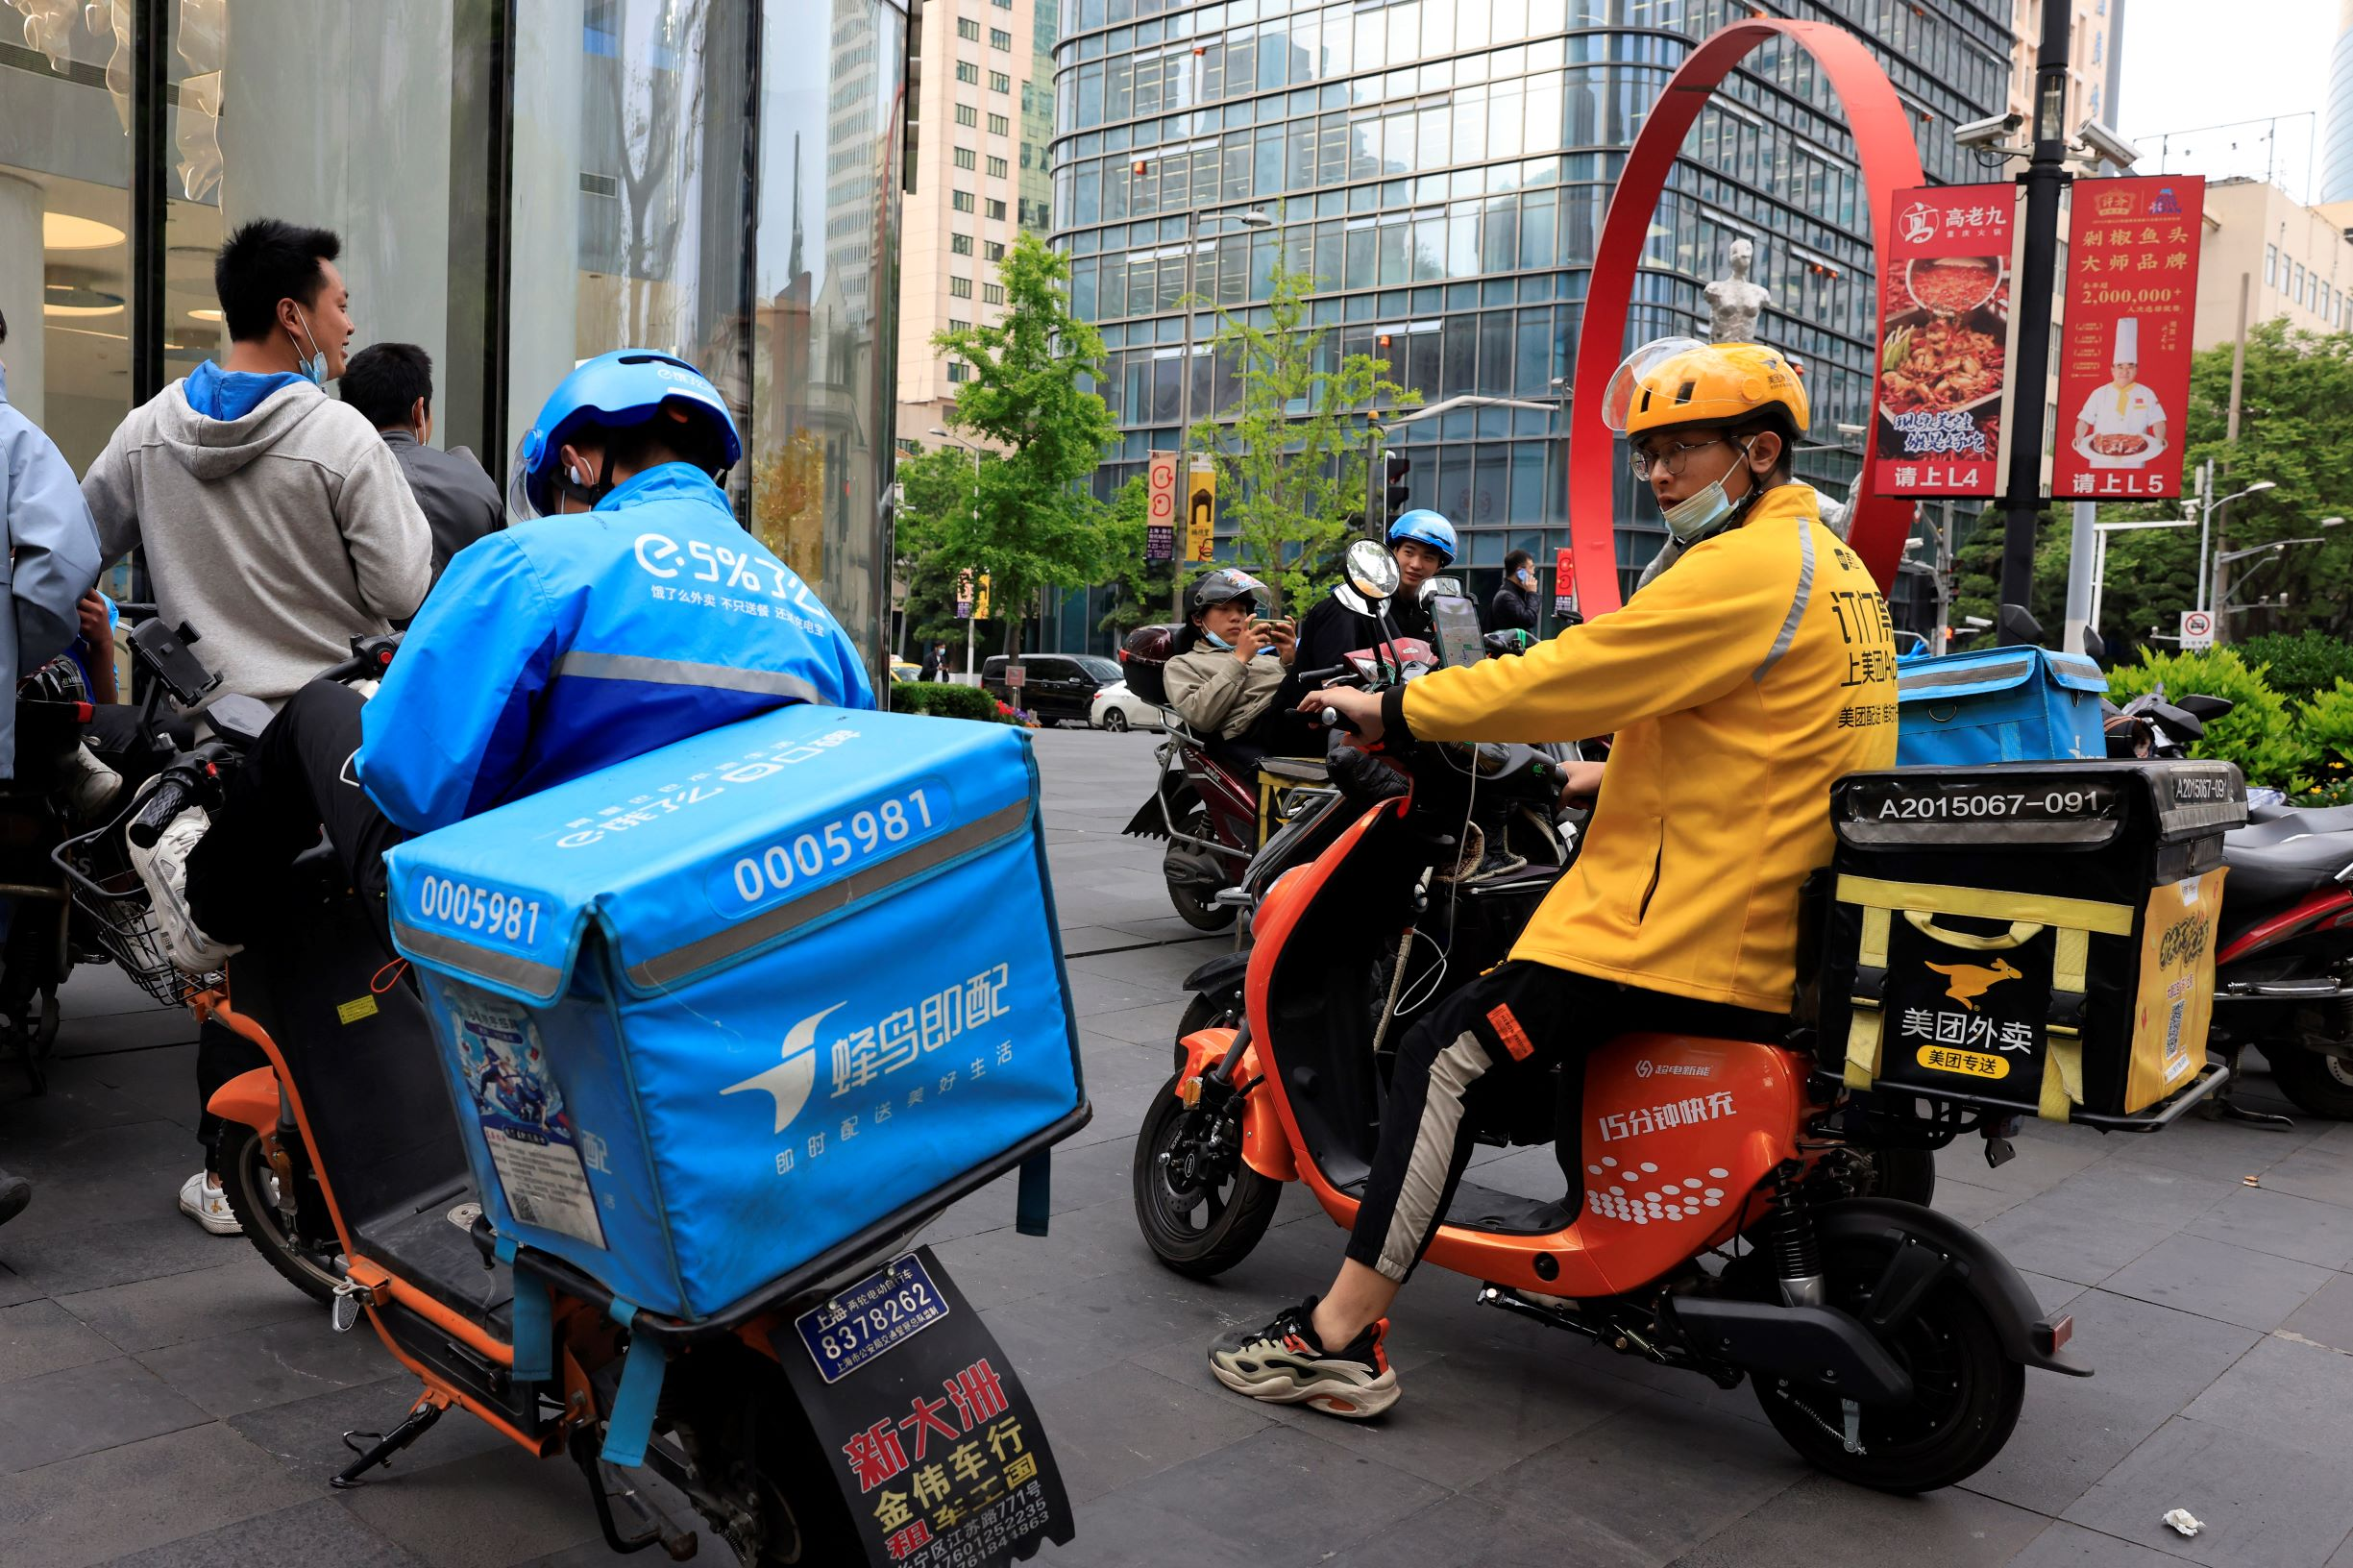 A Meituan delivery man